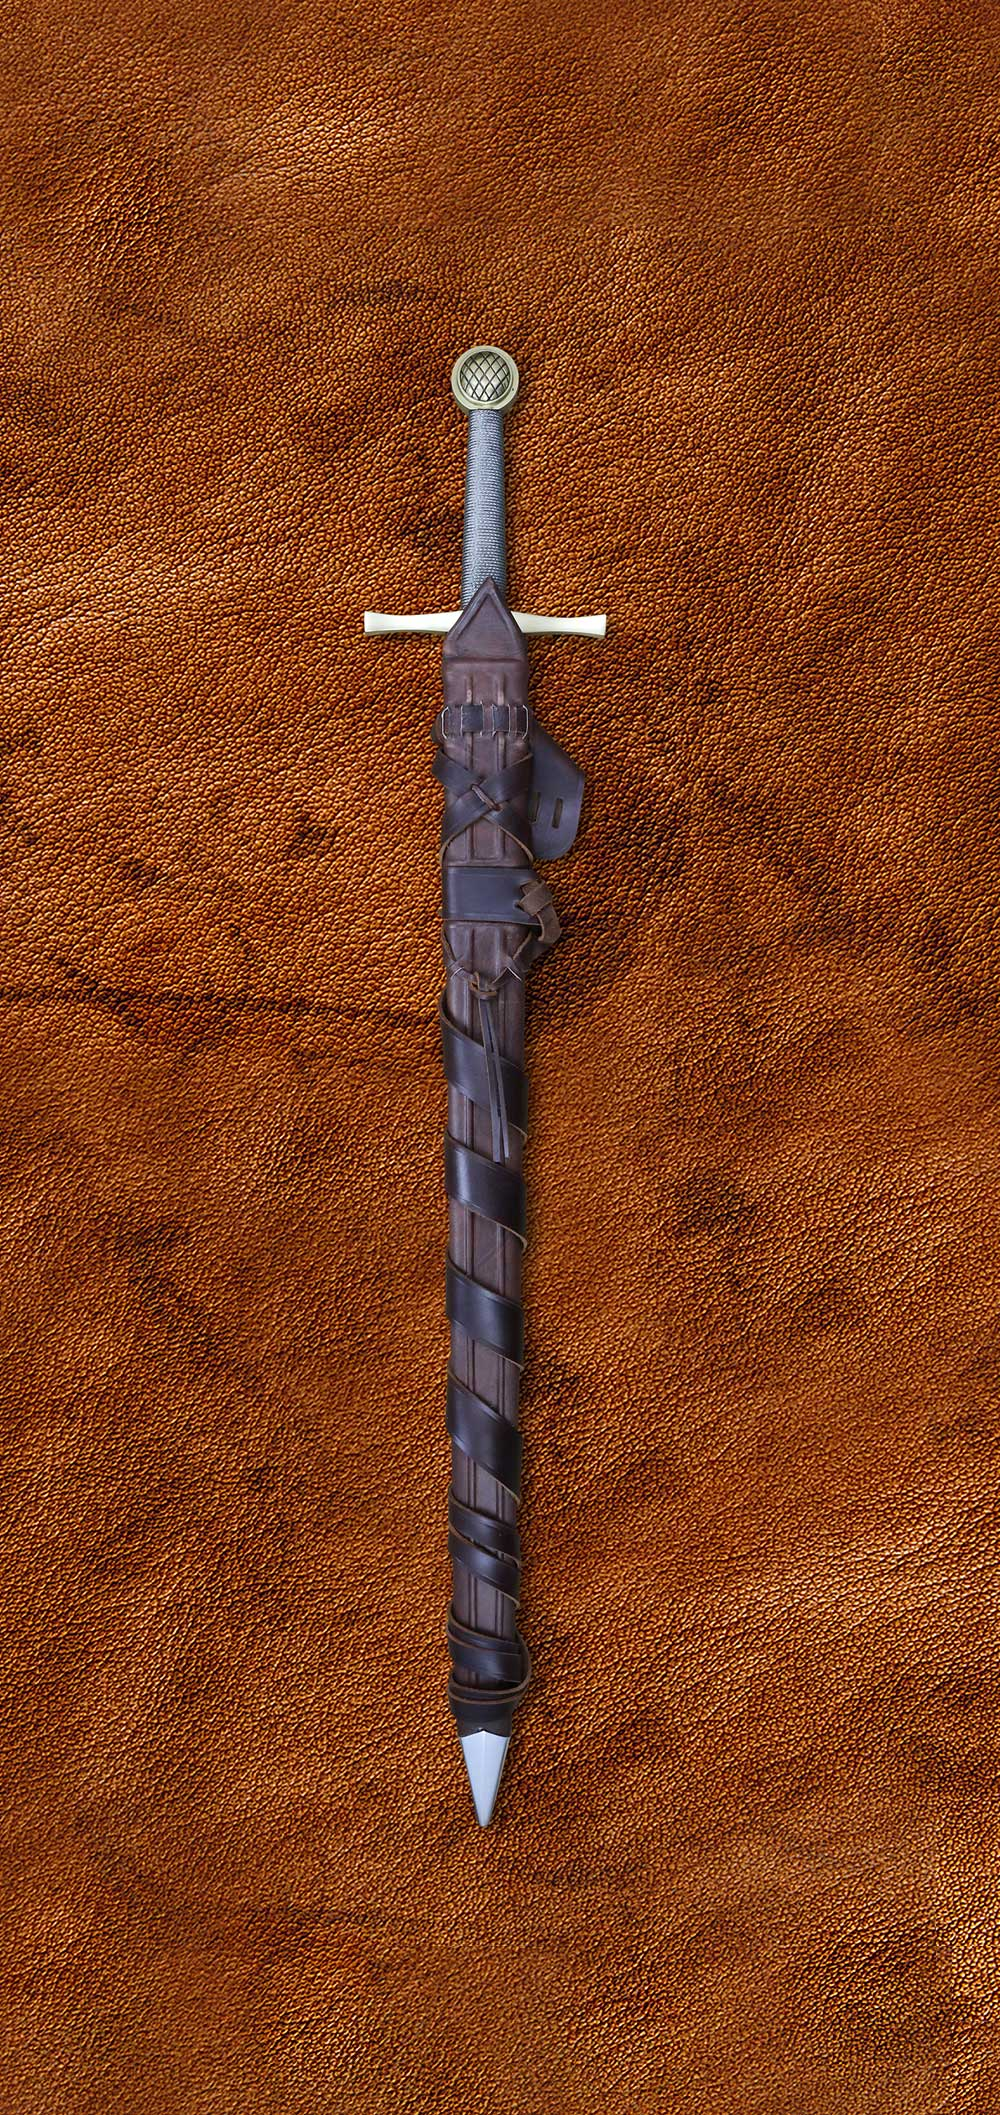 the-excalibur-sword-medieval-weapon-1524-in-scabbard